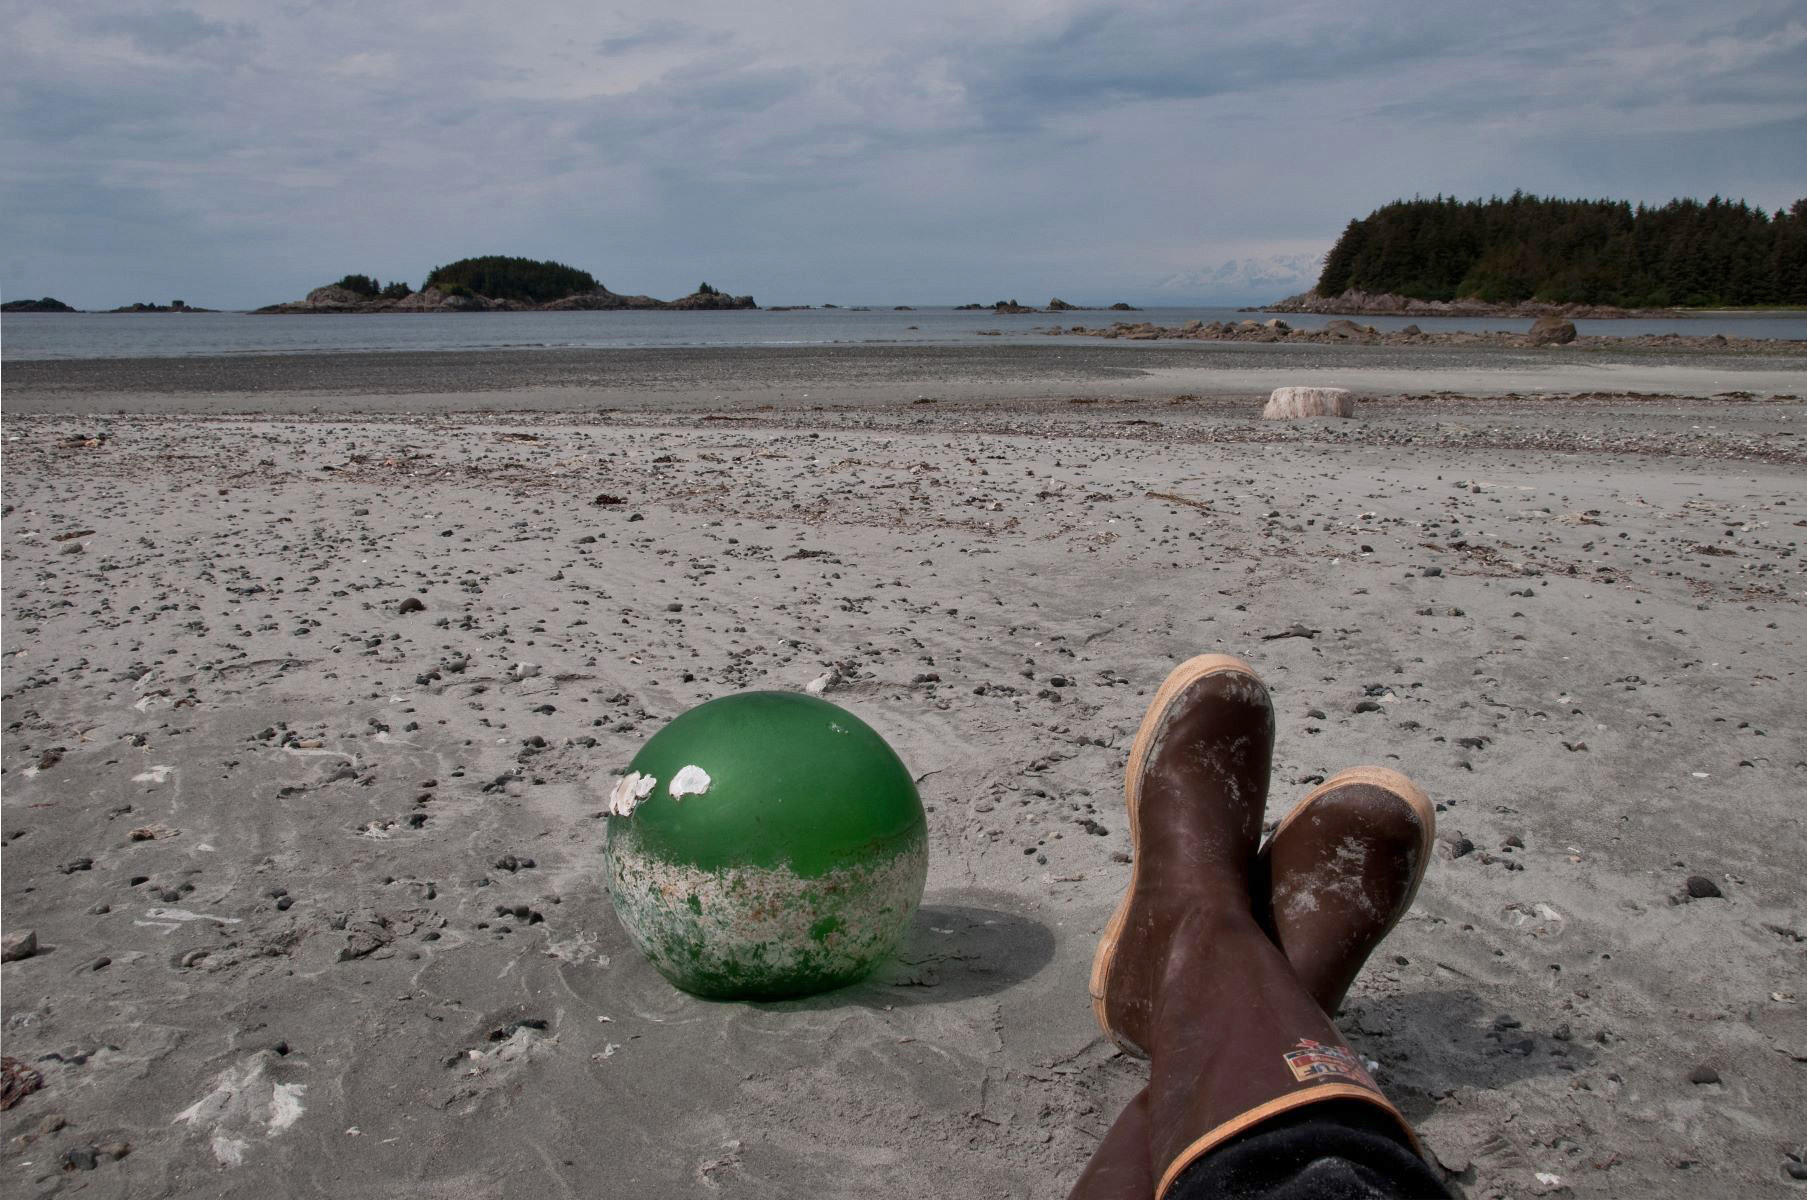 Before the days of plastic fishing floats, glass balls were sometimes used to suspend large fishing nets.  Most glass floats found in Alaska are apparently from Japanese fishing vessels.